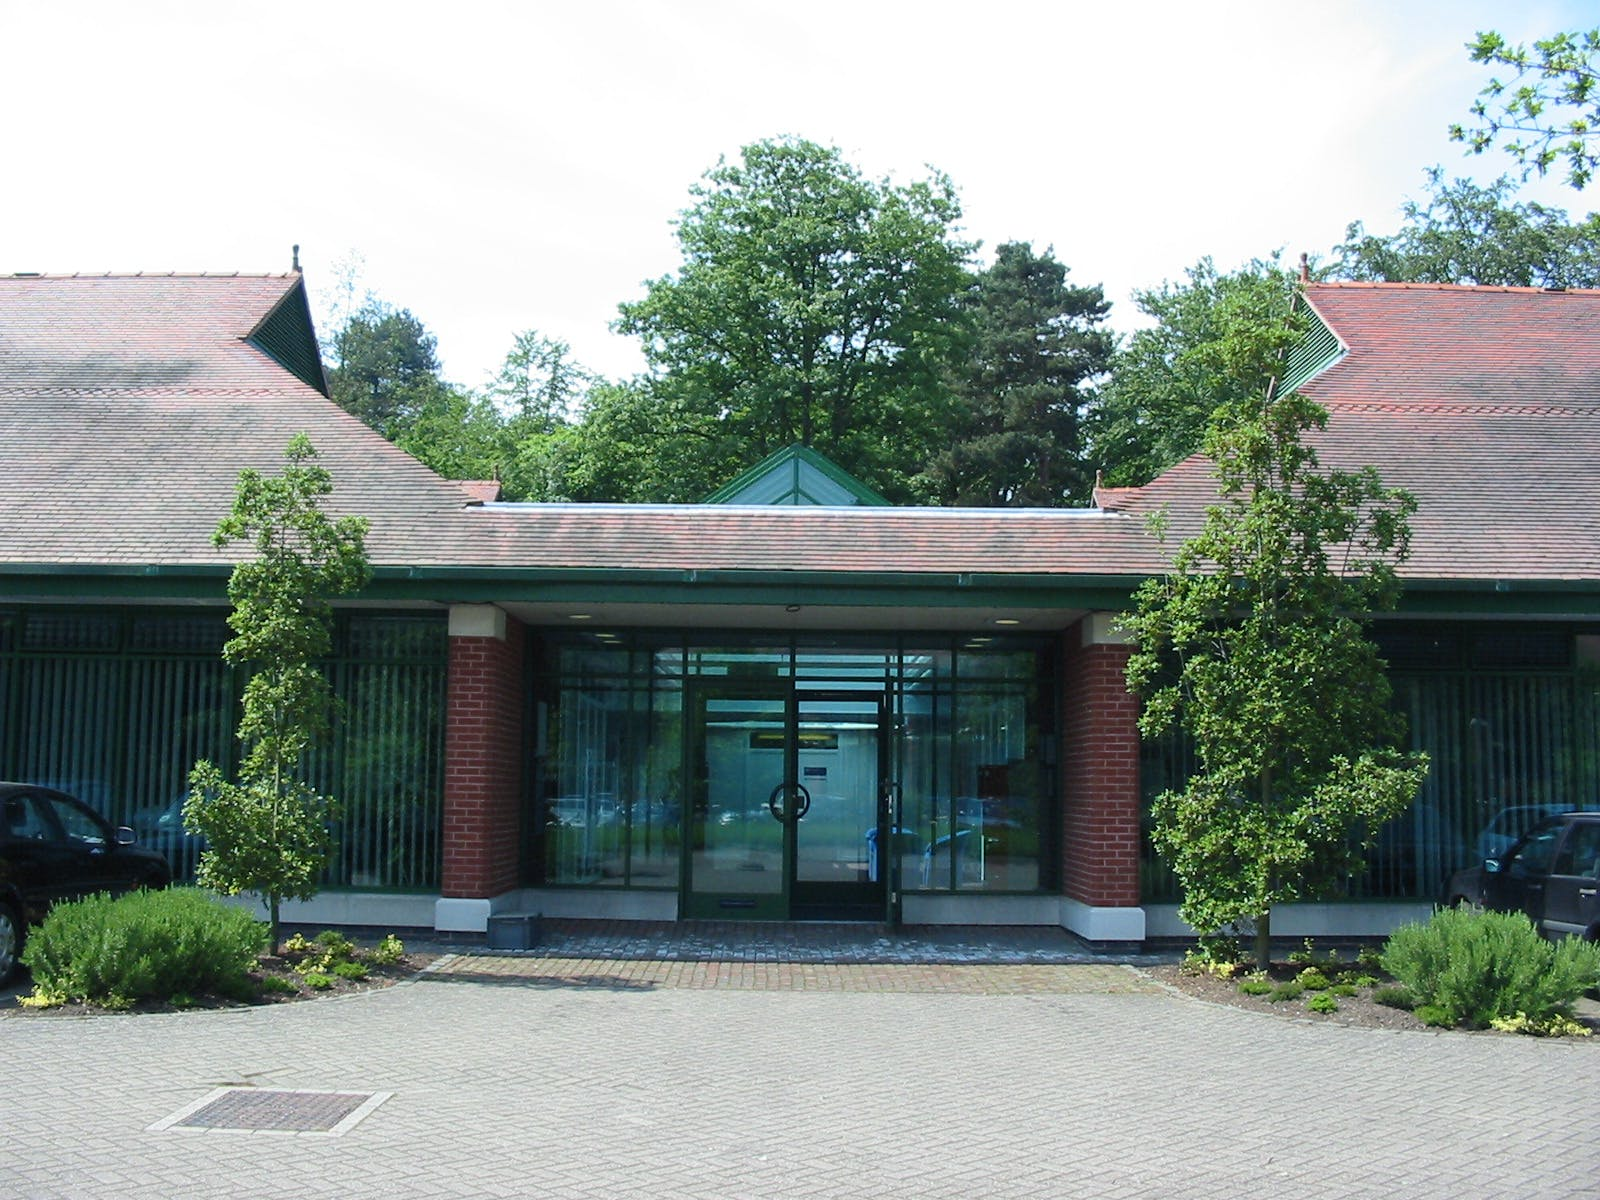 Suite 13, Silwood Business Centre, Ascot, Offices To Let - Suite 13, Silwood Business Centre, Buckhurst Road, Ascot SL5